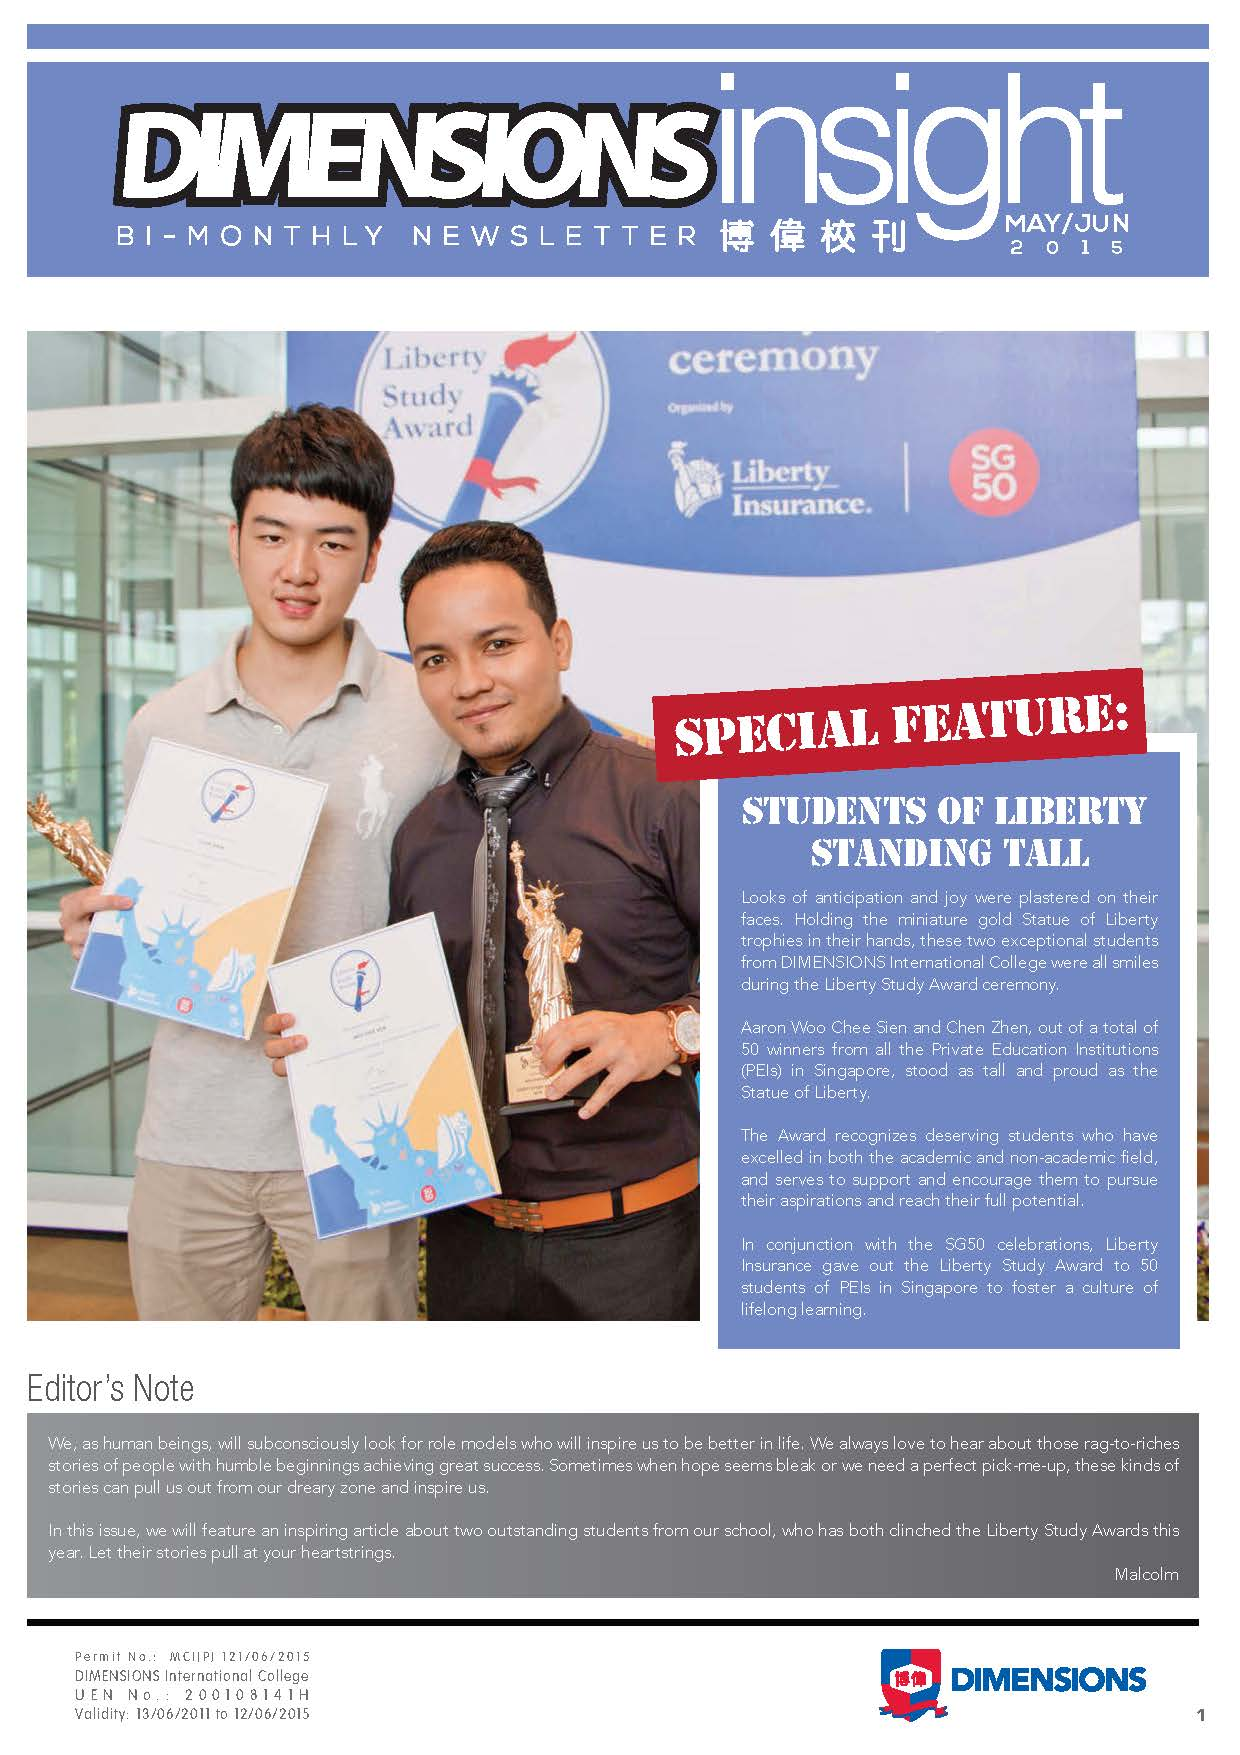 Newsletter May-Jun 2015 Page 1